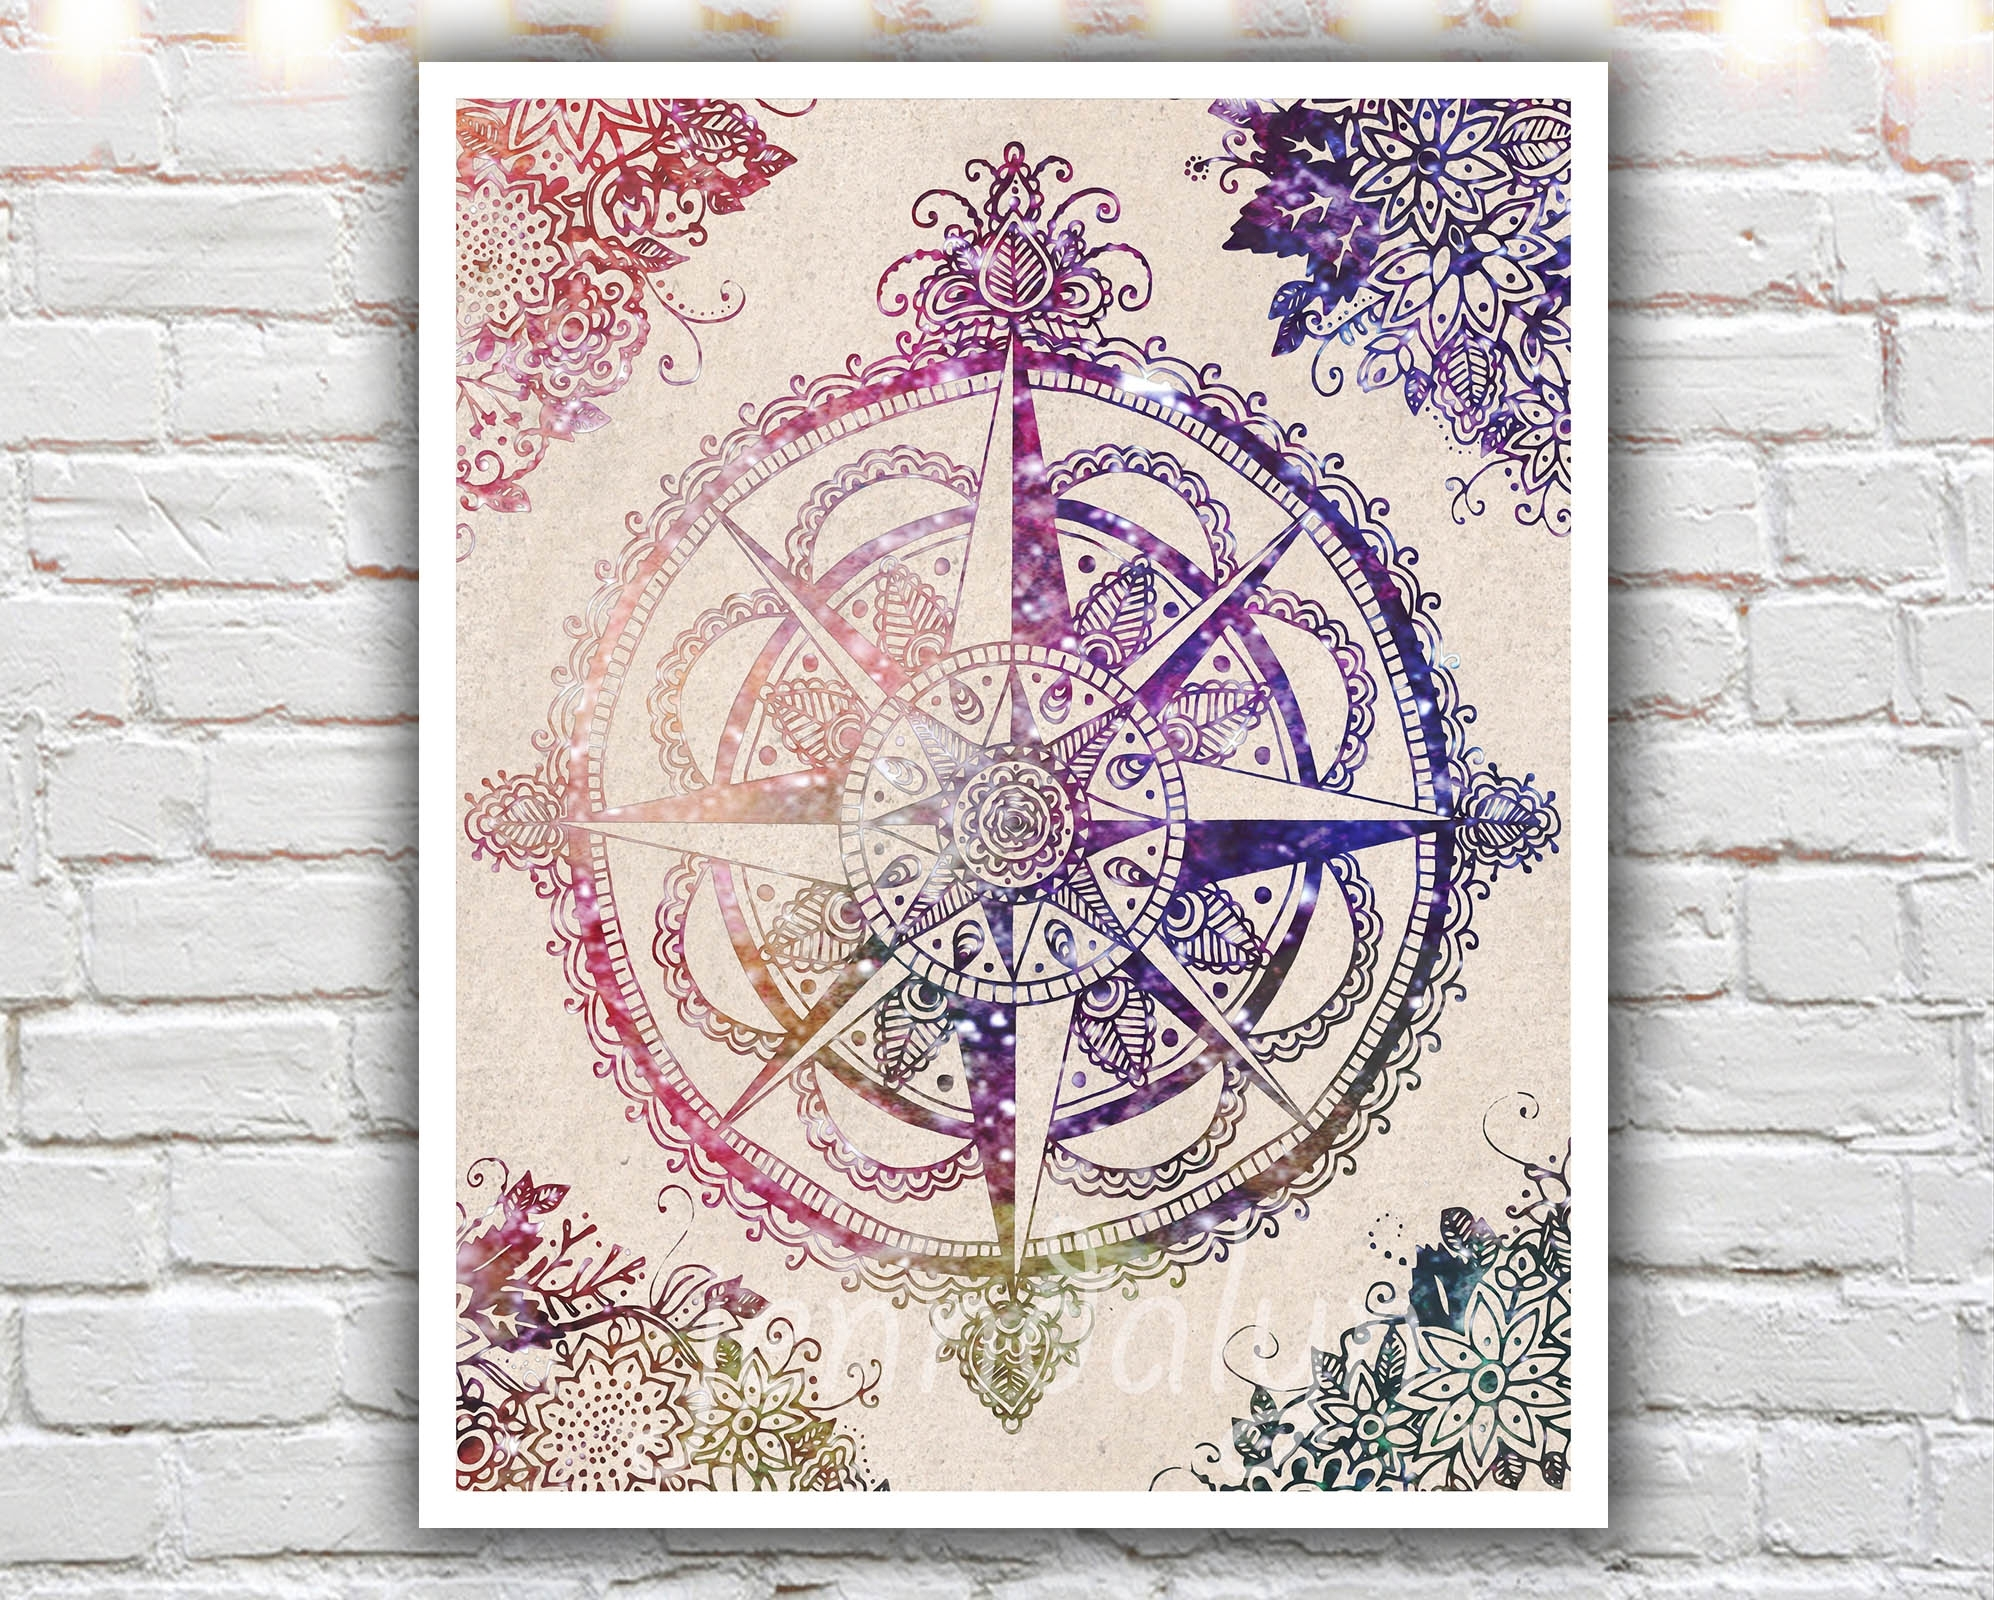 Voyager Ii – 16 X 20 Paper Print, Large Wall Art, Compass Rose In Best And Newest Henna Wall Art (View 7 of 20)